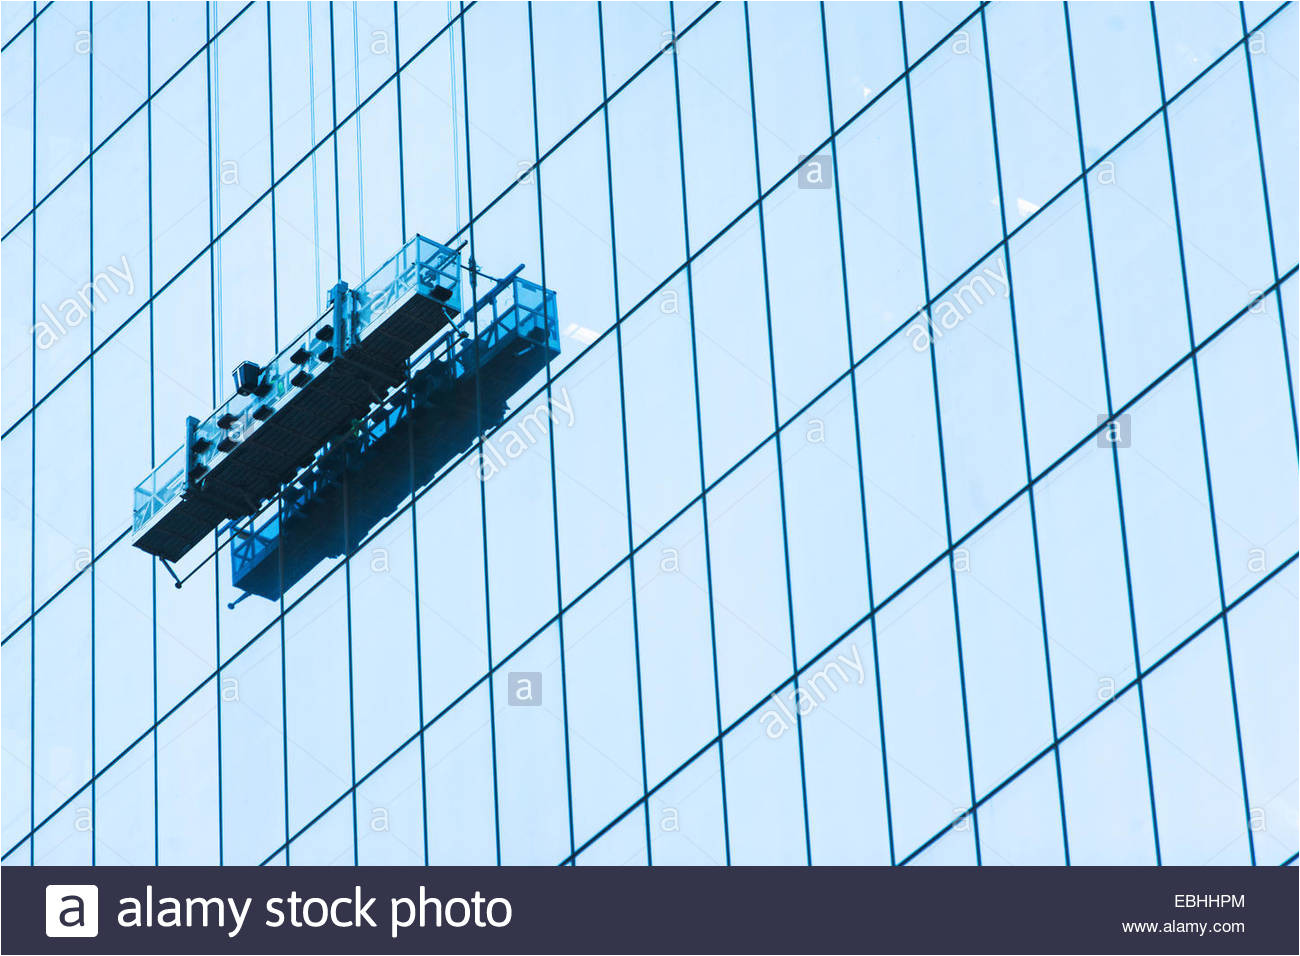 suspended window cleaning platform on glass building stock image